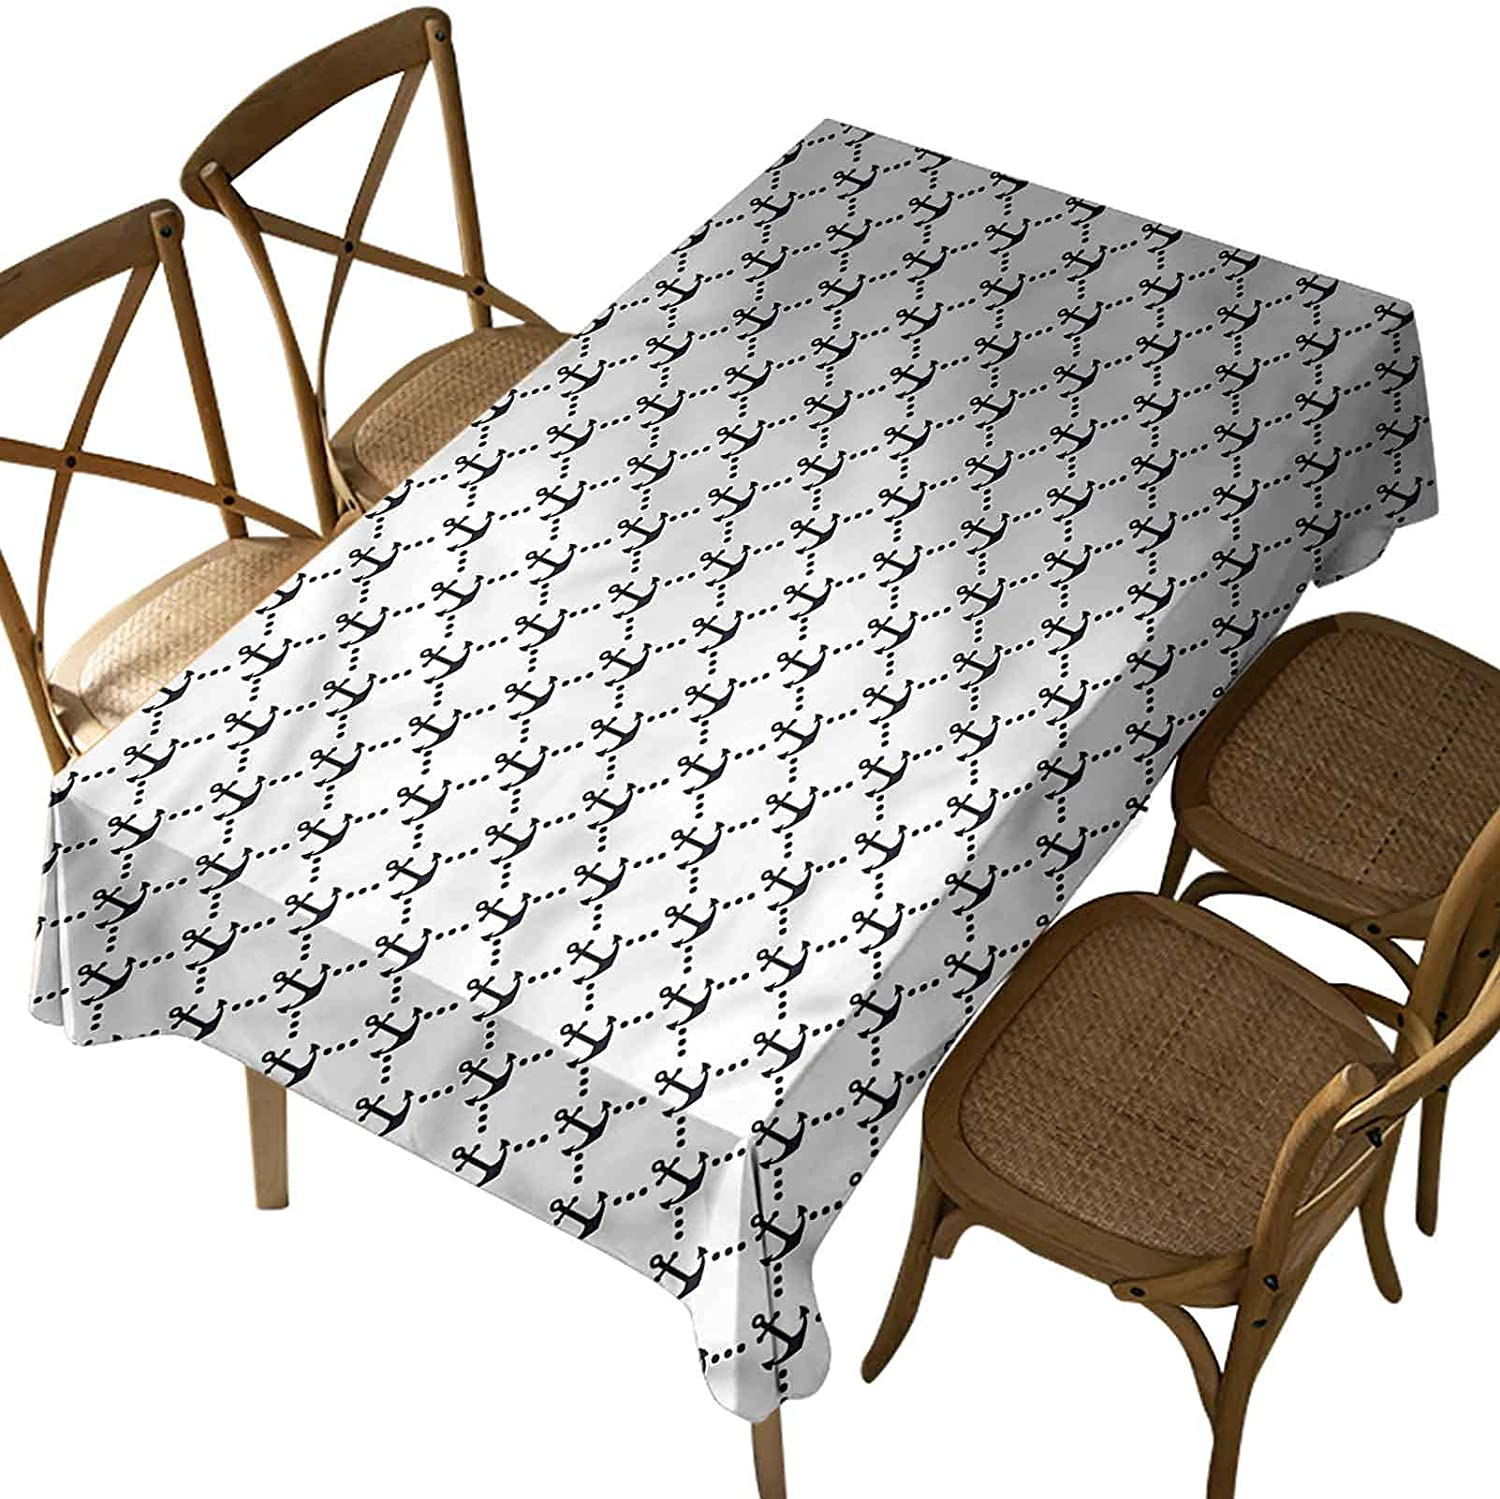 Rectangular Polyester Tablecloth,Anchor,Dotted Tile with Anchors,Indoor Outdoor Spillproof Tablecloth Table Cover,for Spring Summer Patio Garden Tabletop Decor Oblong 60 x 84 Inch